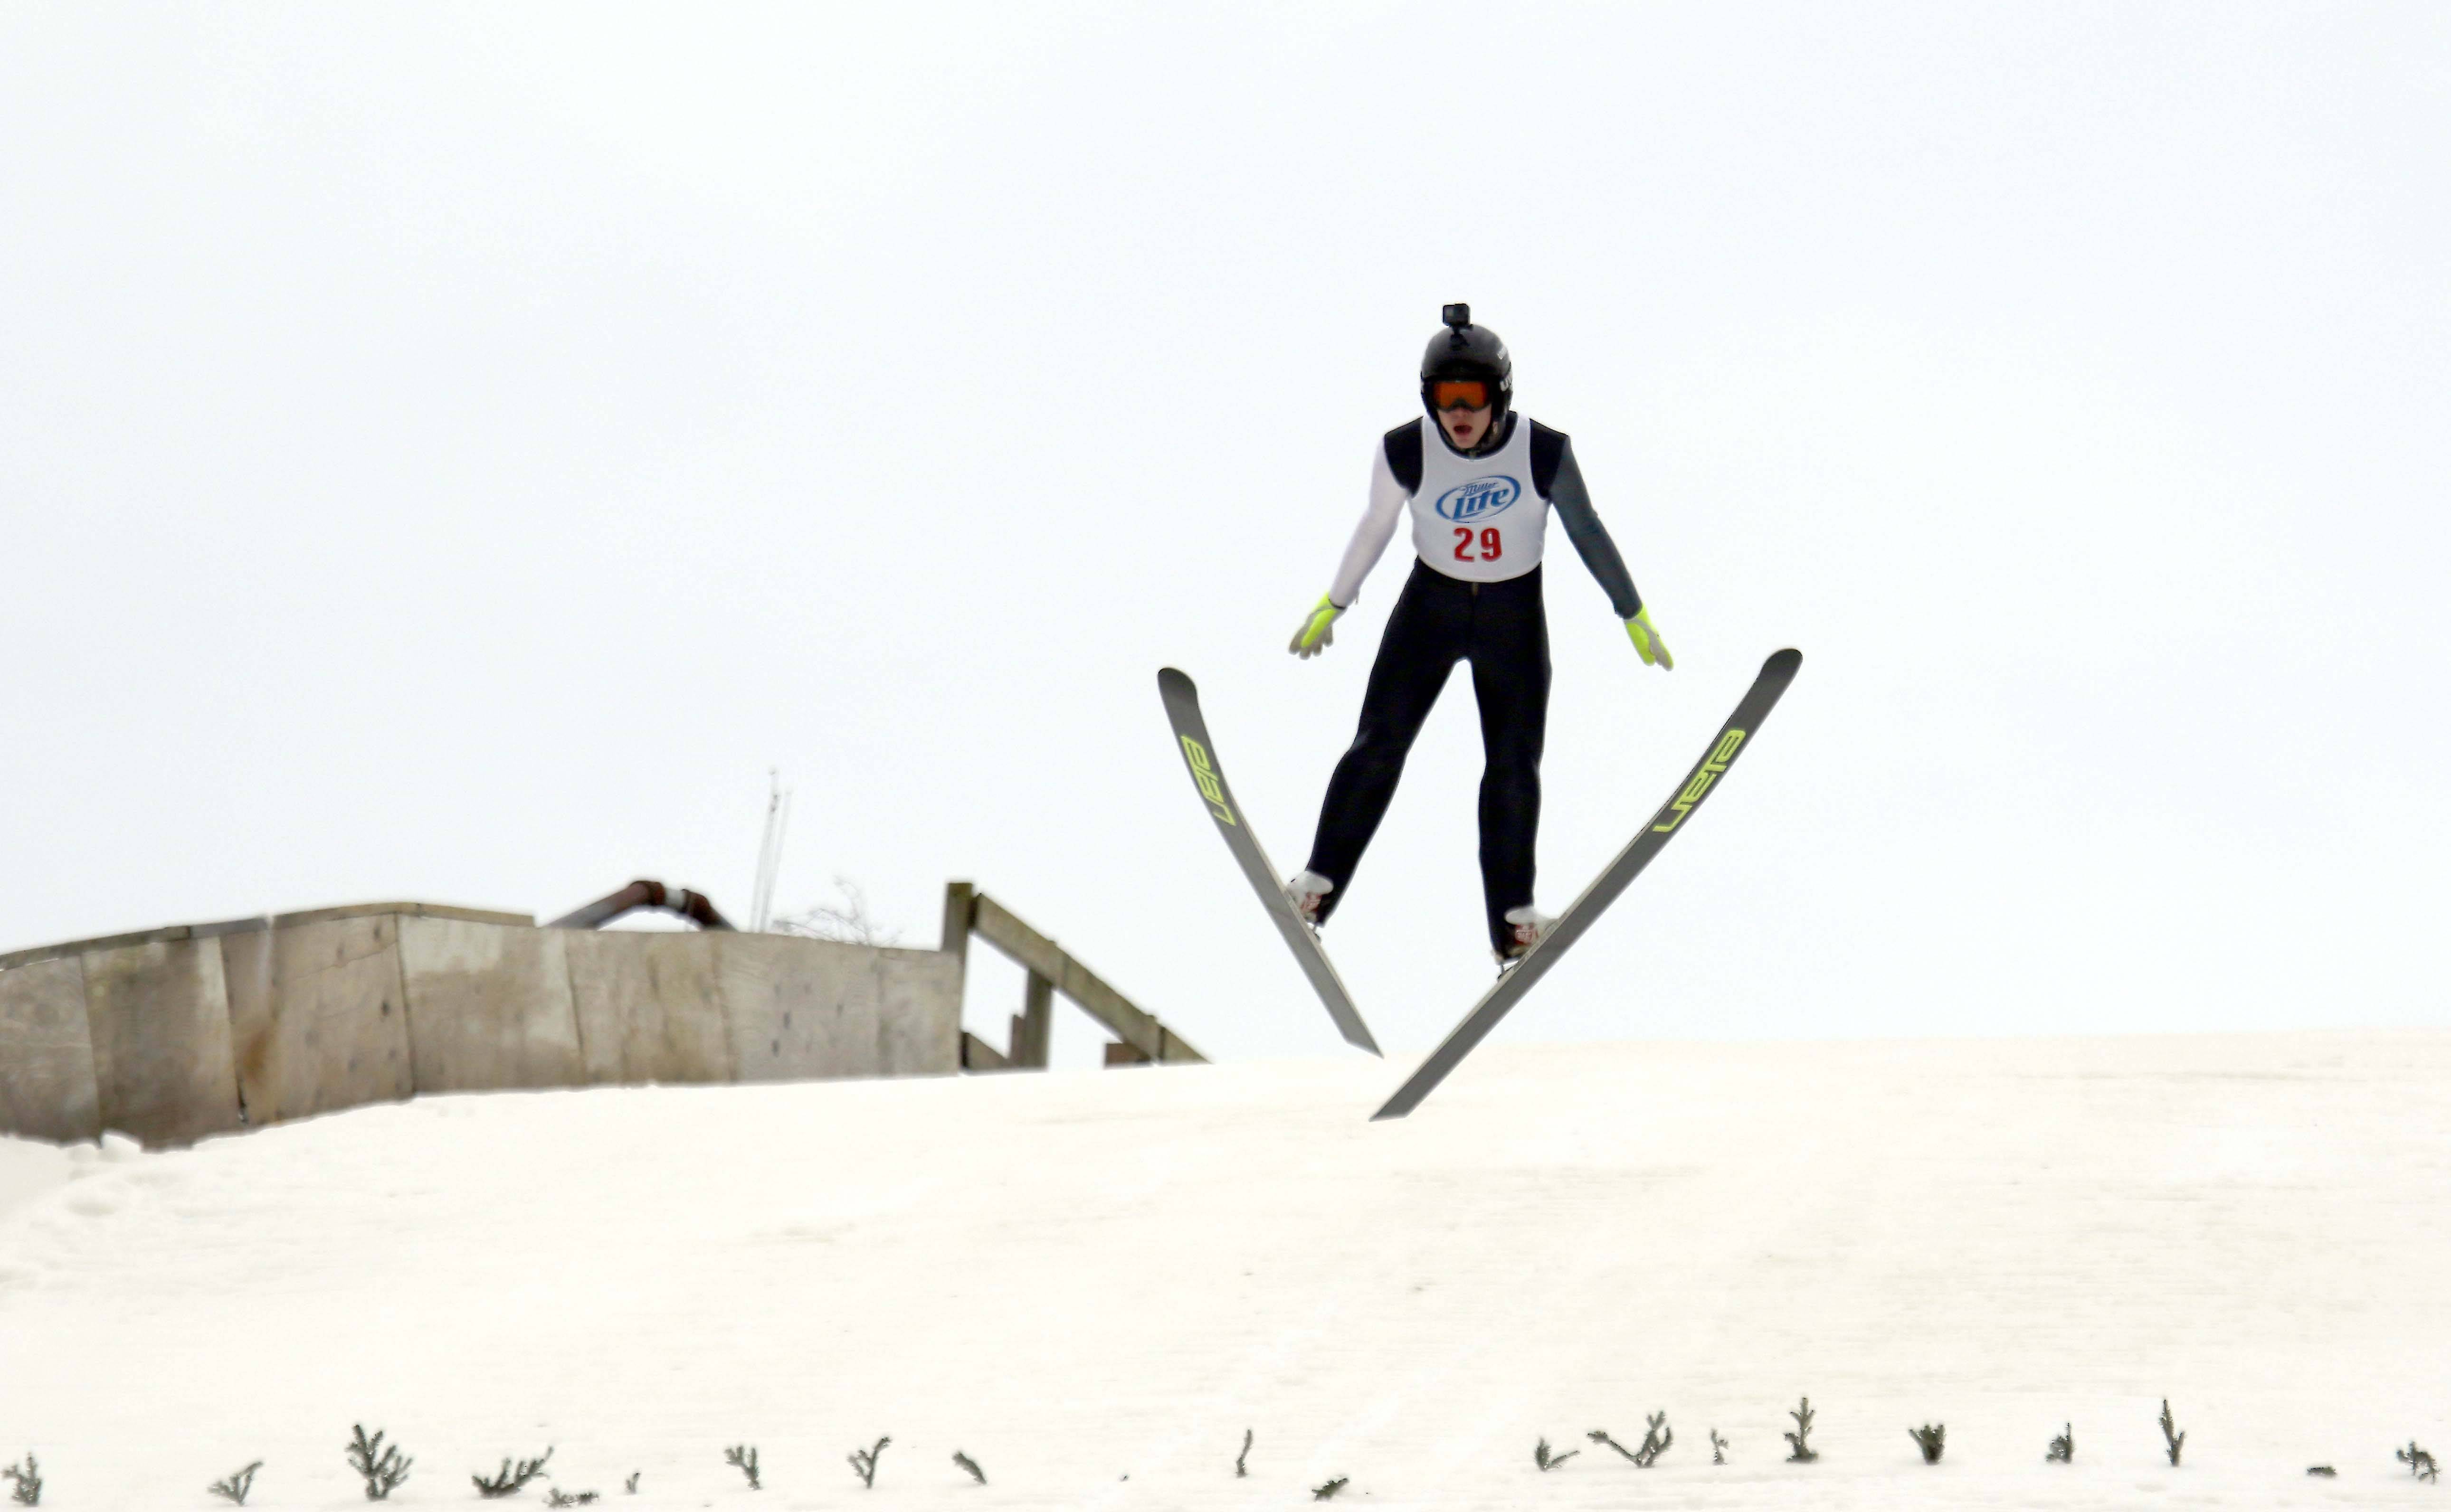 Hunter Gibson, 15, of Fox River Grove, a member of the Norge Ski Club, launches himself from the big hill during the club's 112th International Winter Tournament in Fox River Grove. Ski jumpers take to the slopes for this year's tournament this weekend.